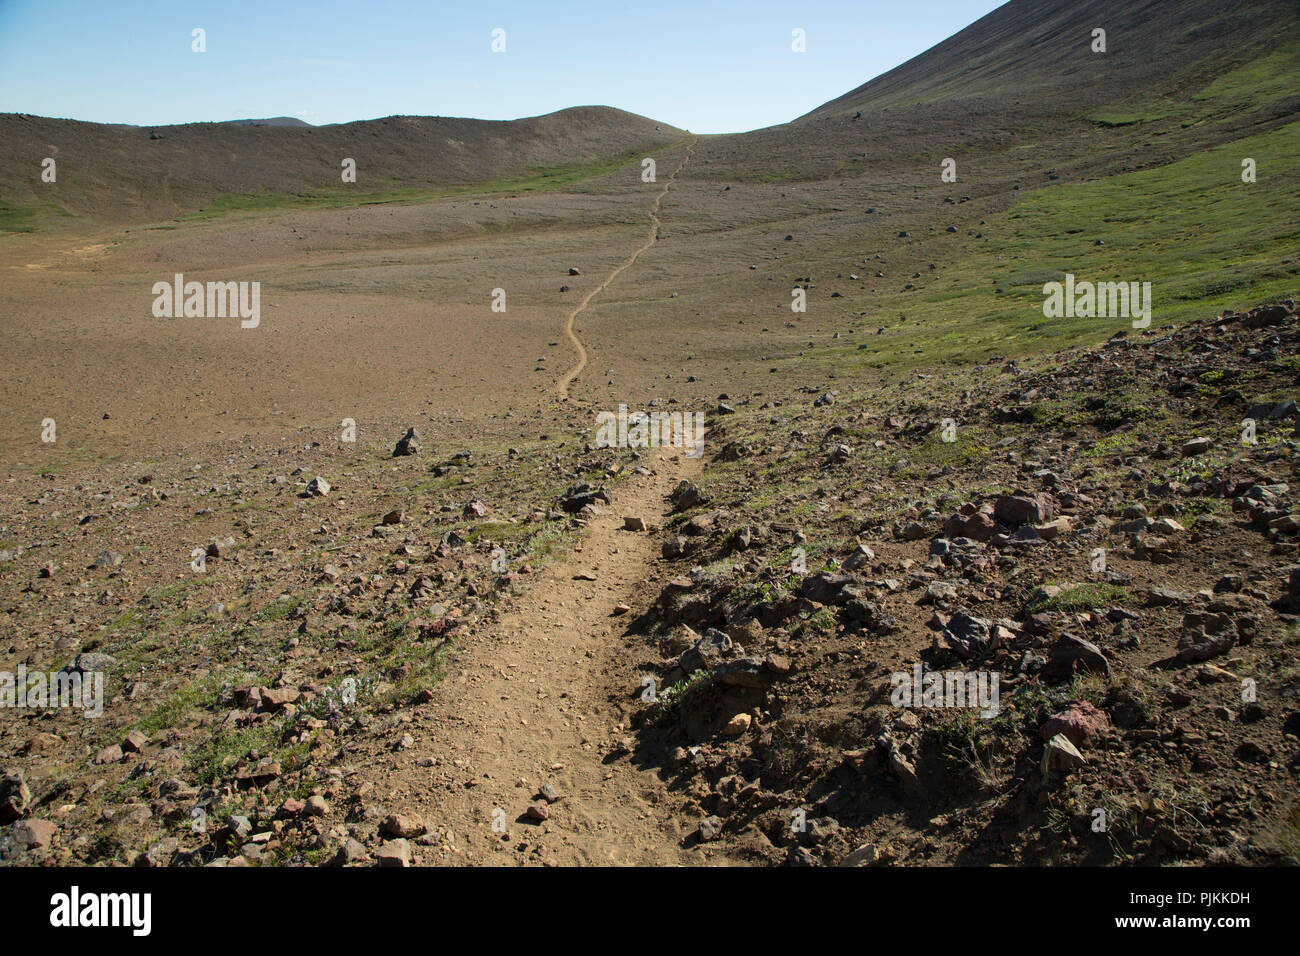 Iceland, long empty hiking trail in volcanic desert, deserted to the horizon, nice weather - Stock Image